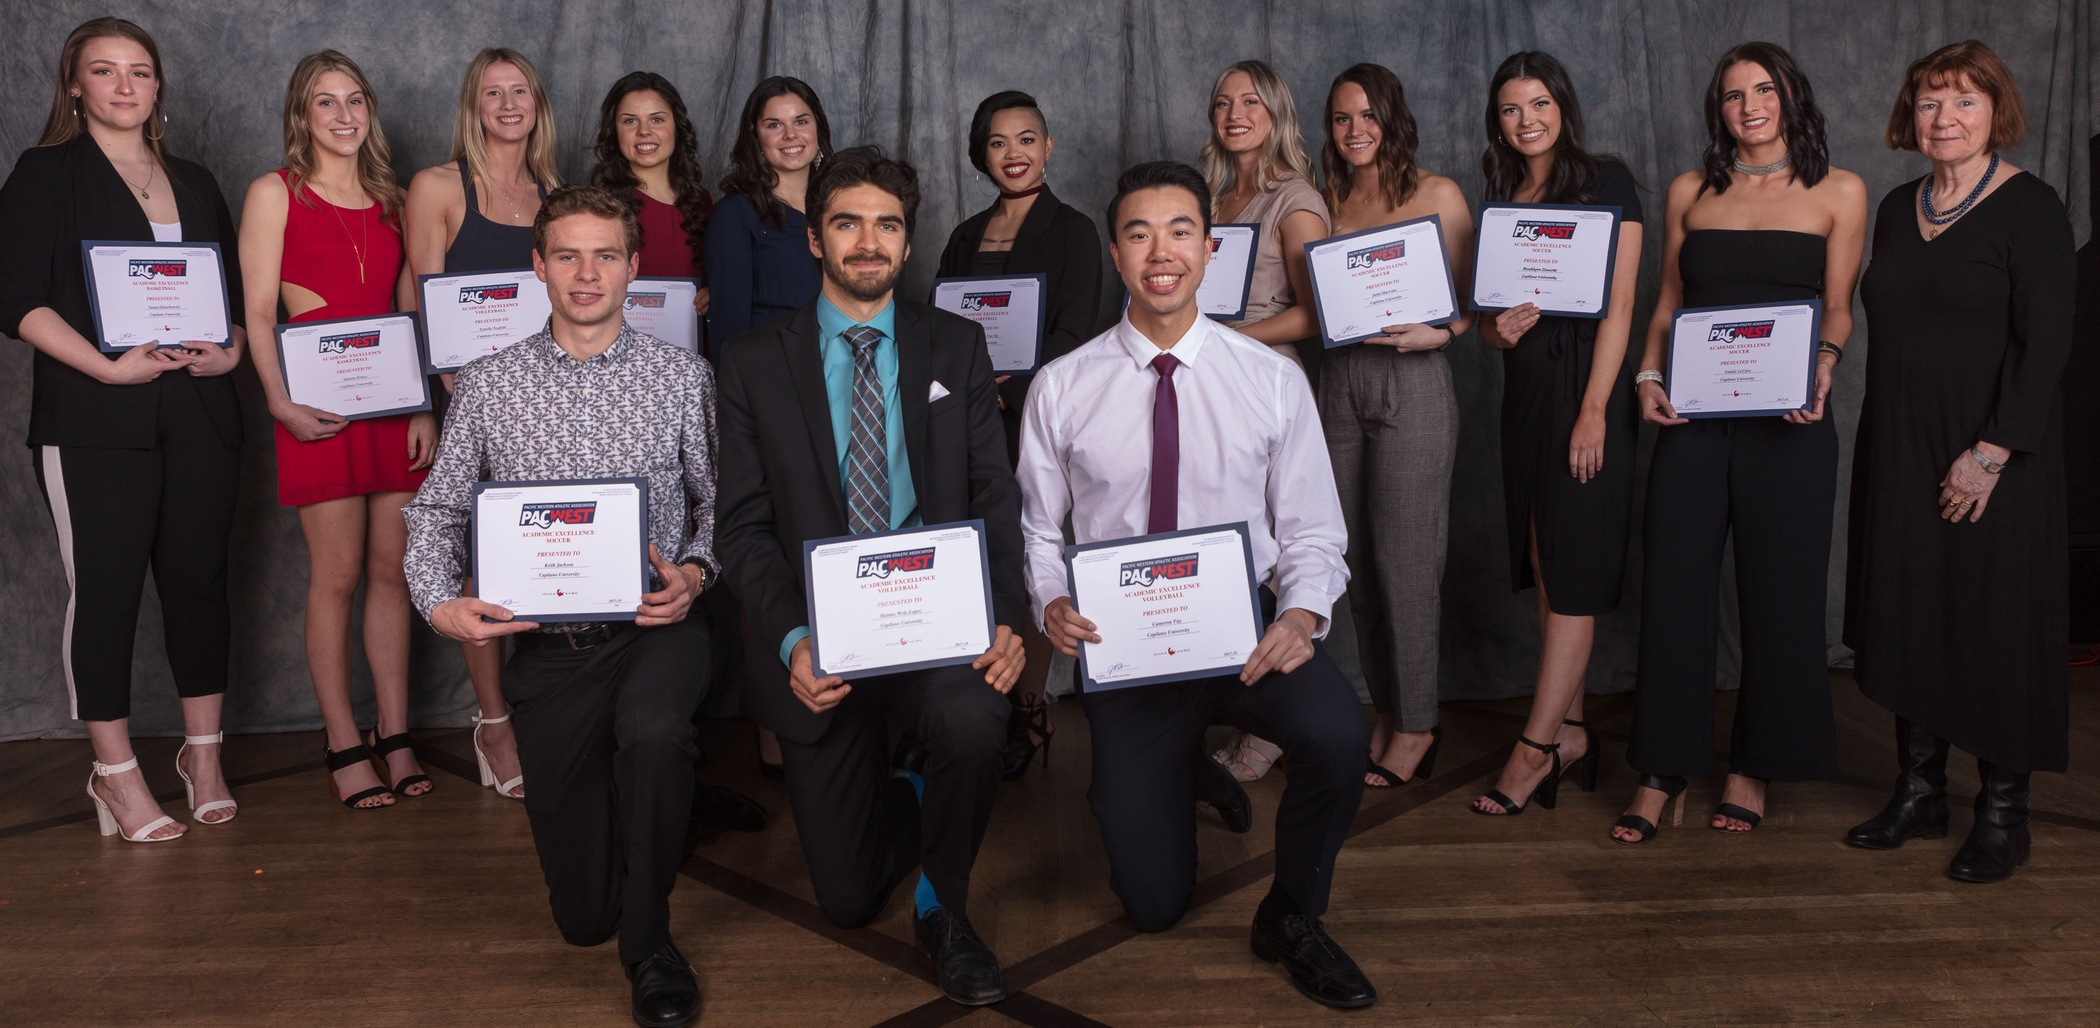 Capilano's 13 PACWEST Academic Excellence Award winners at the CapU Athletic Awards Banquet, along with Cyndi Banks, CapU Associate VP Student Success. Photo Paul Yates / Vancouver Sports Pictures